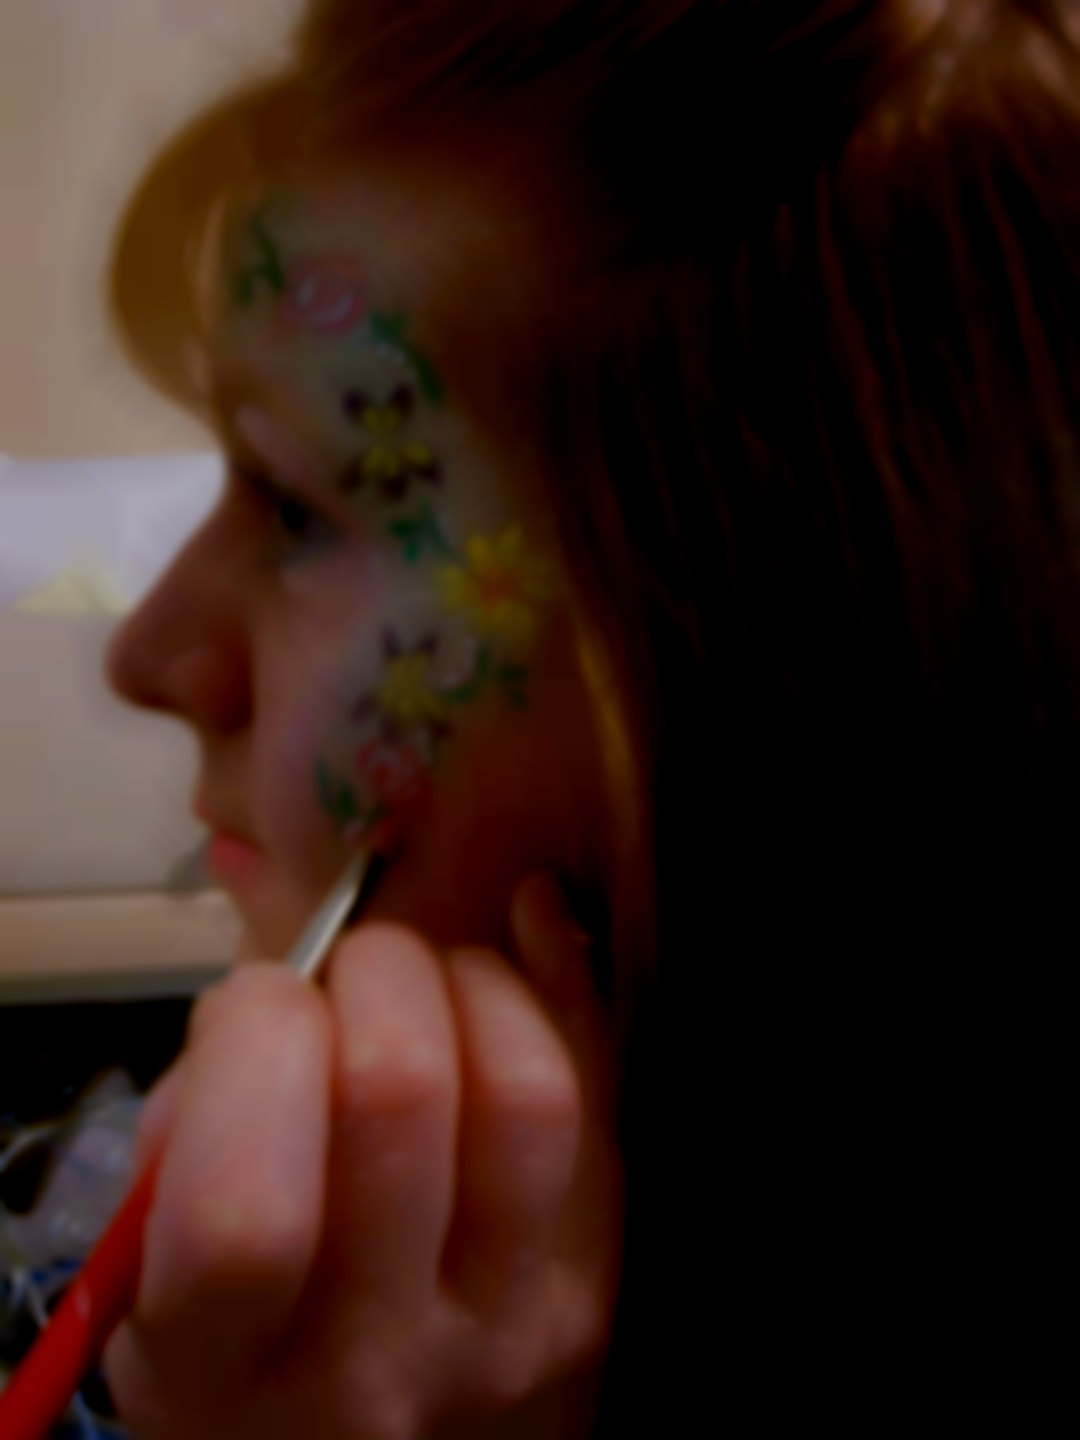 Janet Allen Face Painting her face